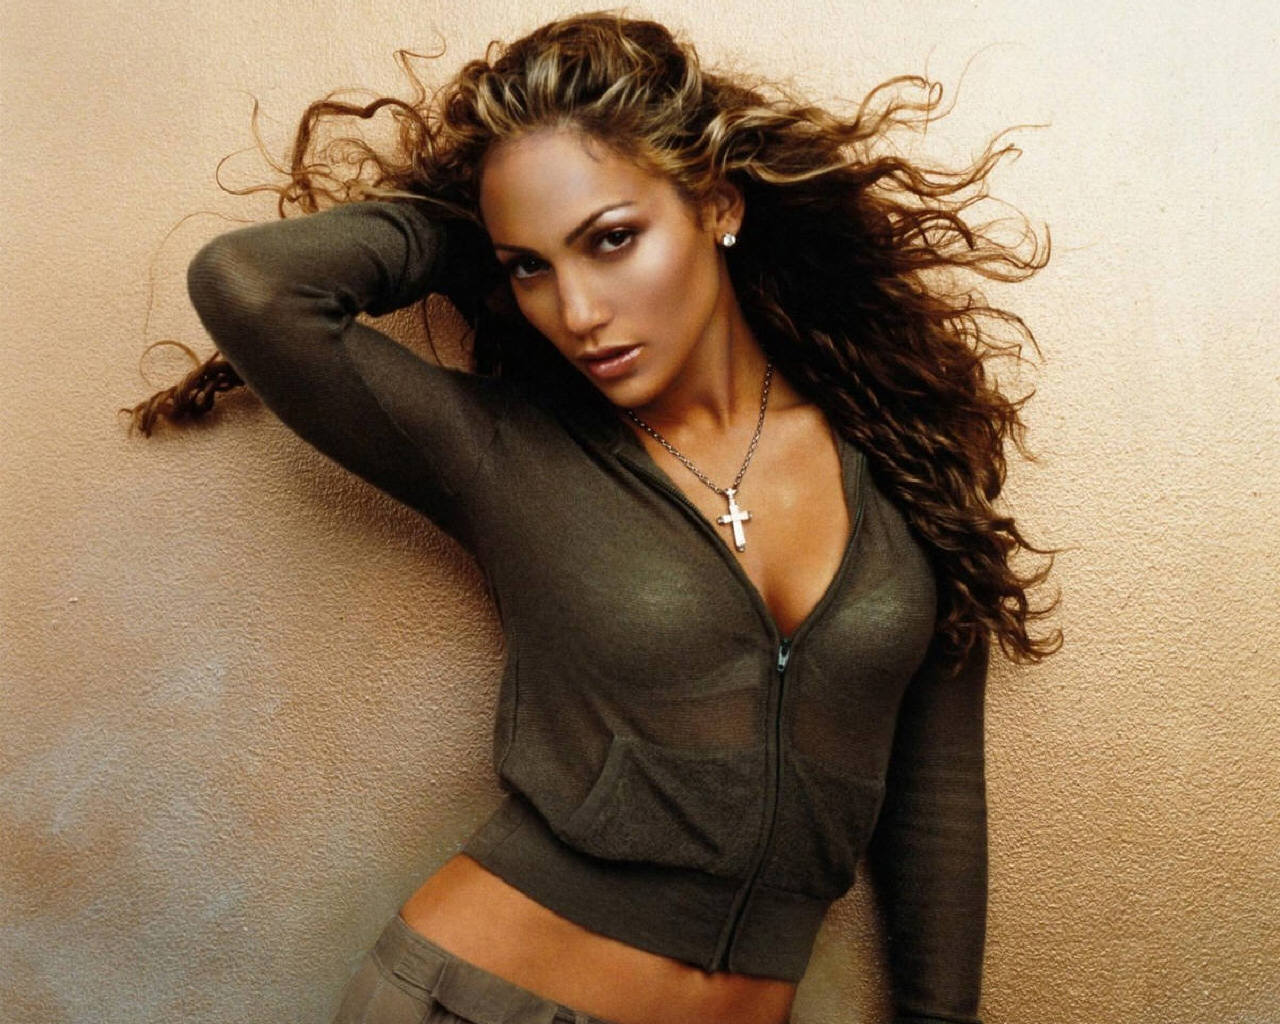 Jennifer Lopez </a><br> by <a href='/profile/Jennifer-lopez/'>Jennifer lopez</a>